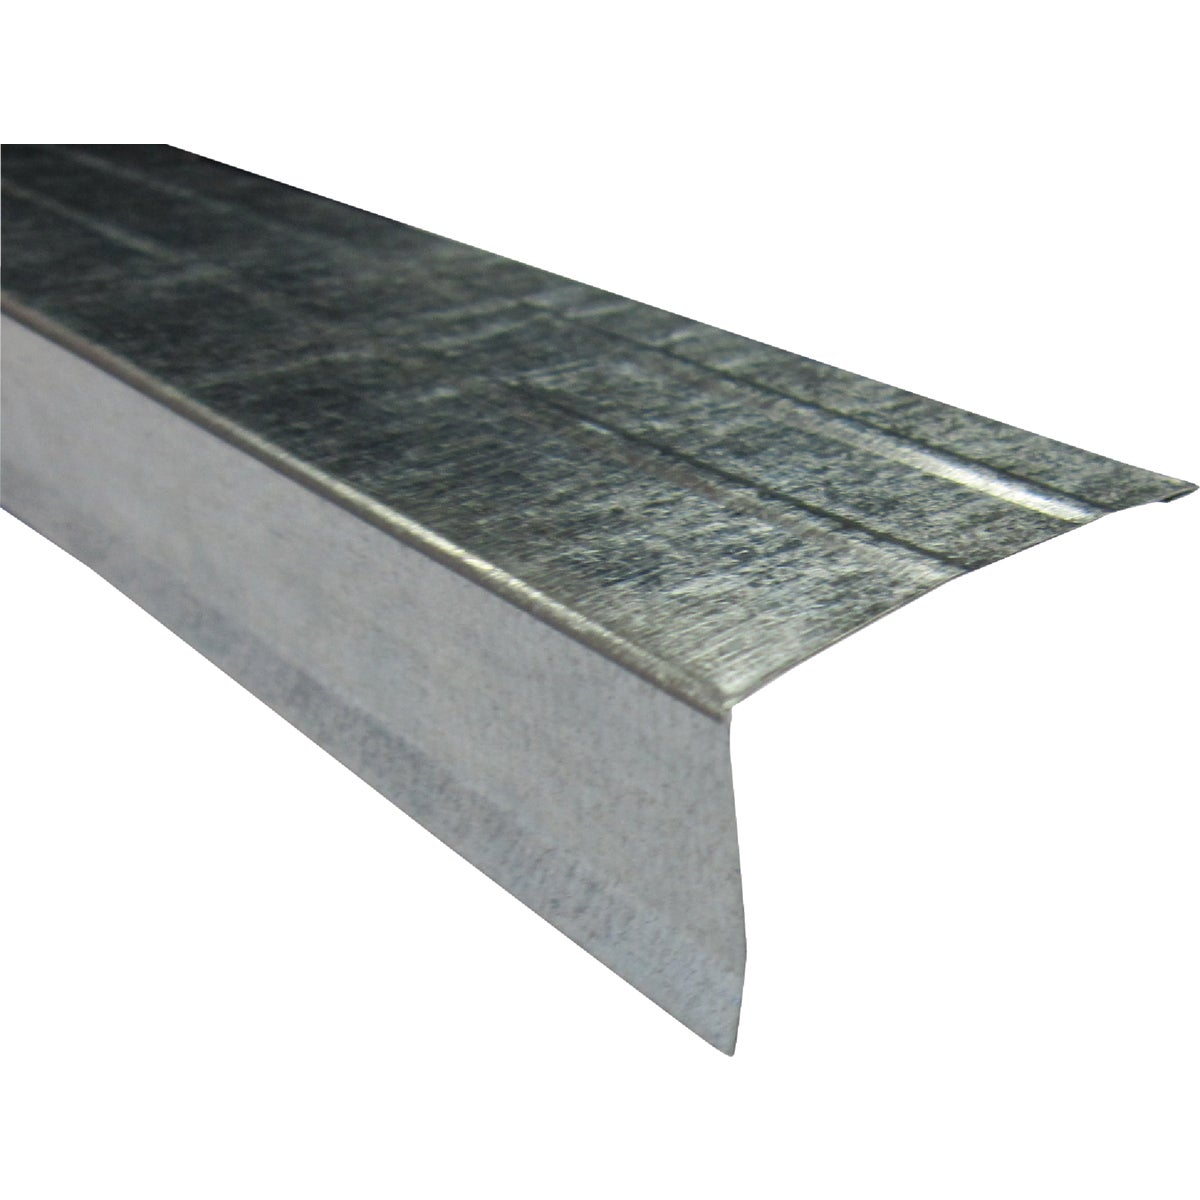 "3""X10' STYLE H ROOF EDGE"